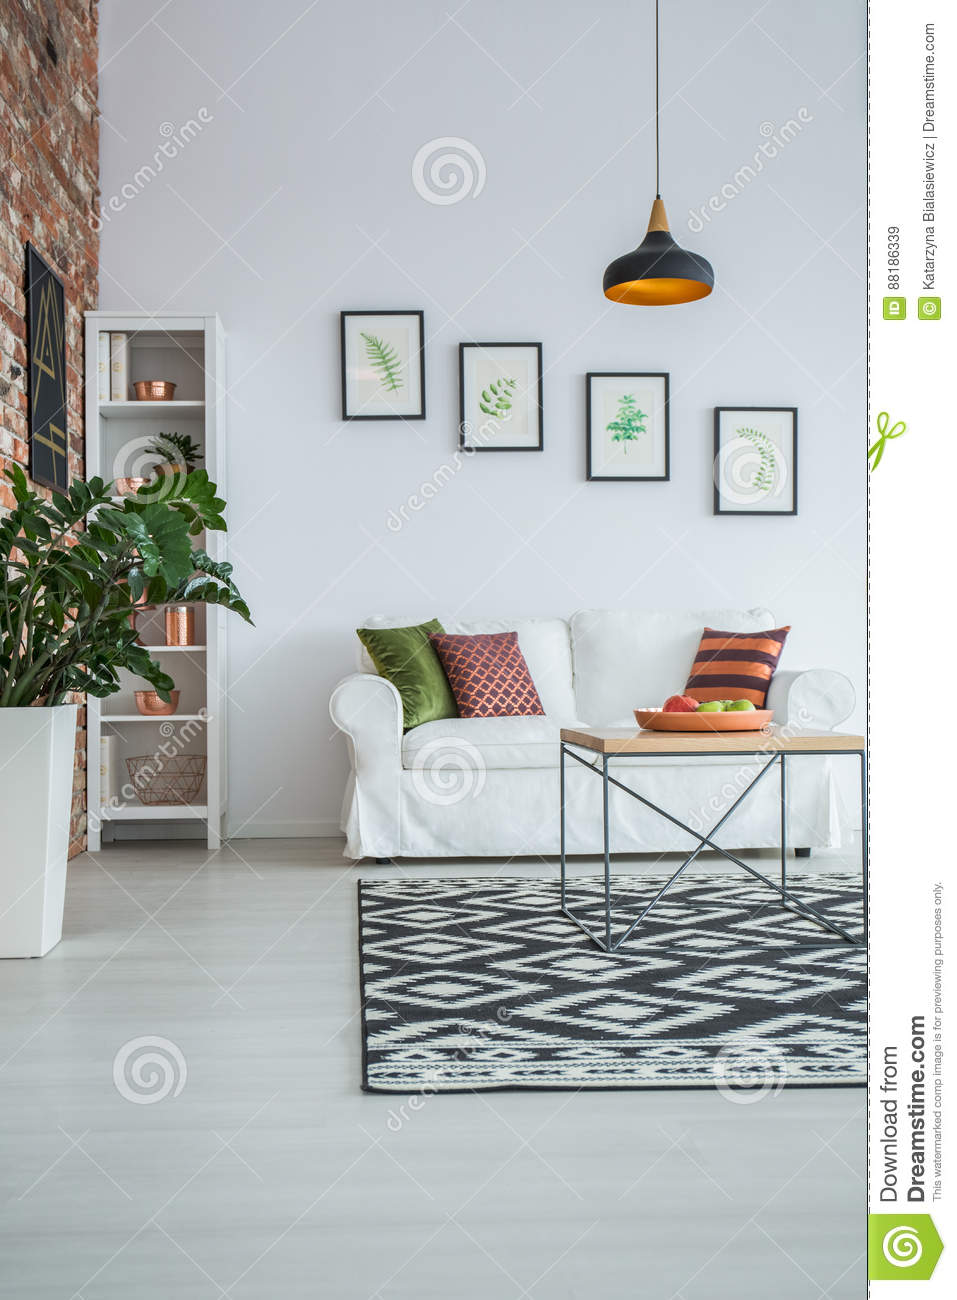 White Living Room With Carpet Stock Image - Image of gold, modern ...